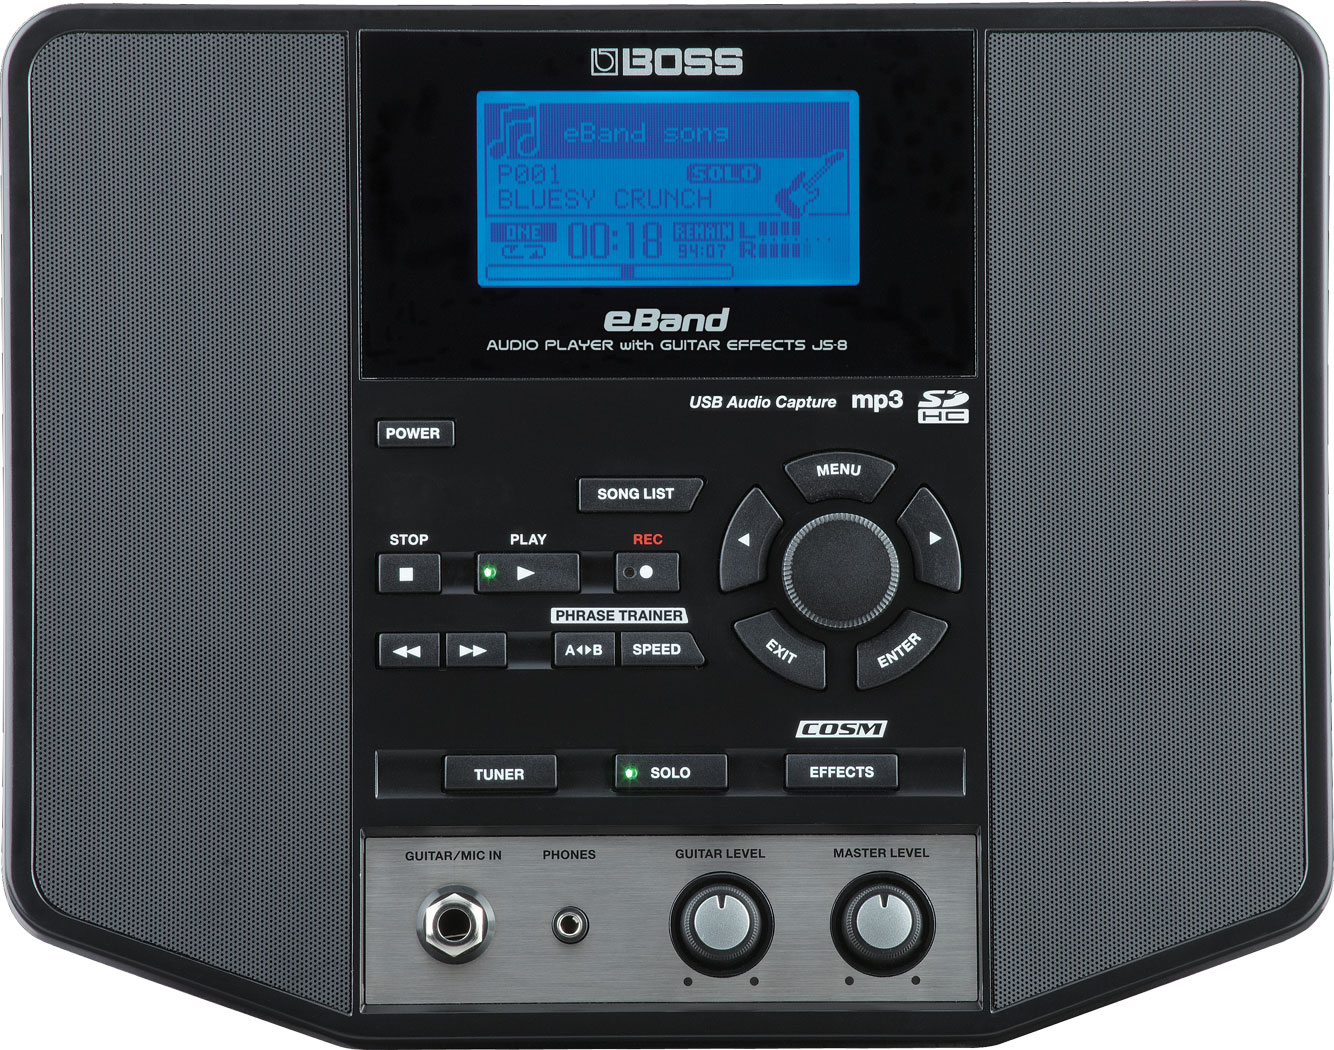 Boss eband js-8 audio player with guitar multi effects | reverb.